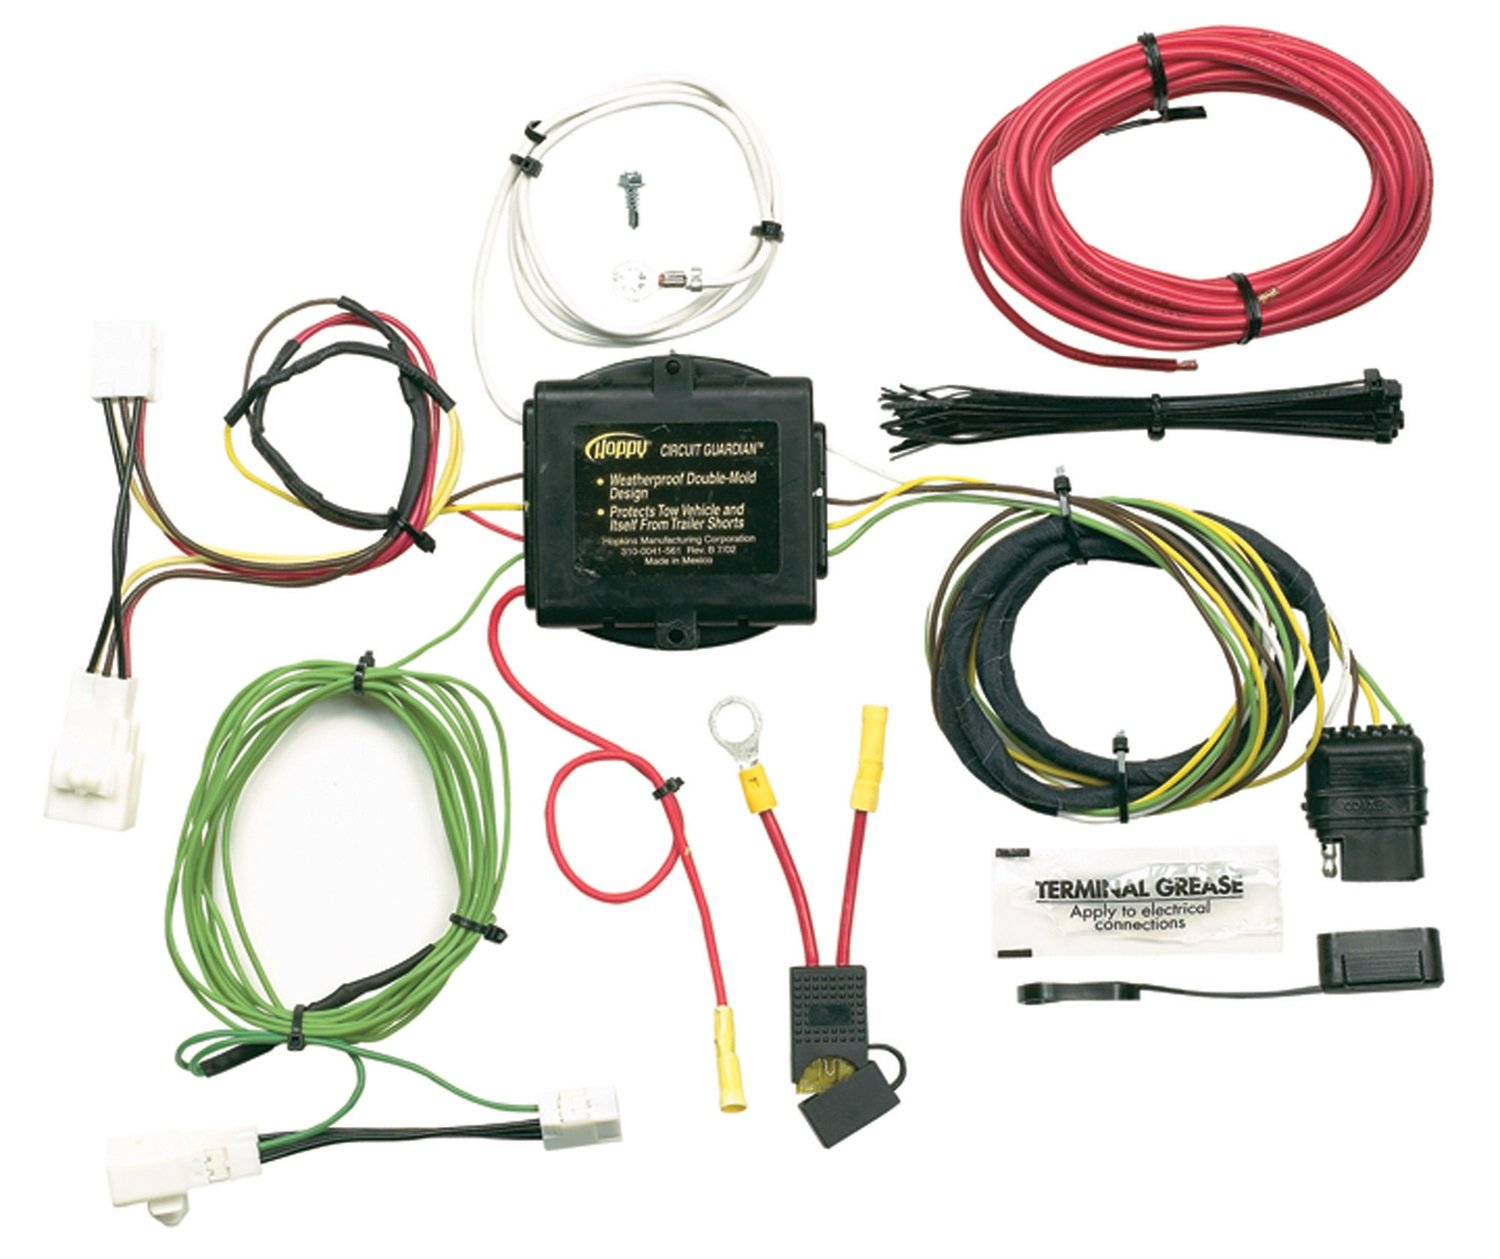 Pep Boys Trailer Wiring Harness Ford Trailer Wiring Harness GM Trailer Wiring Harness Lexus Wiring Harness Pollak Wiring Harness Seven Pole Wiring Harness